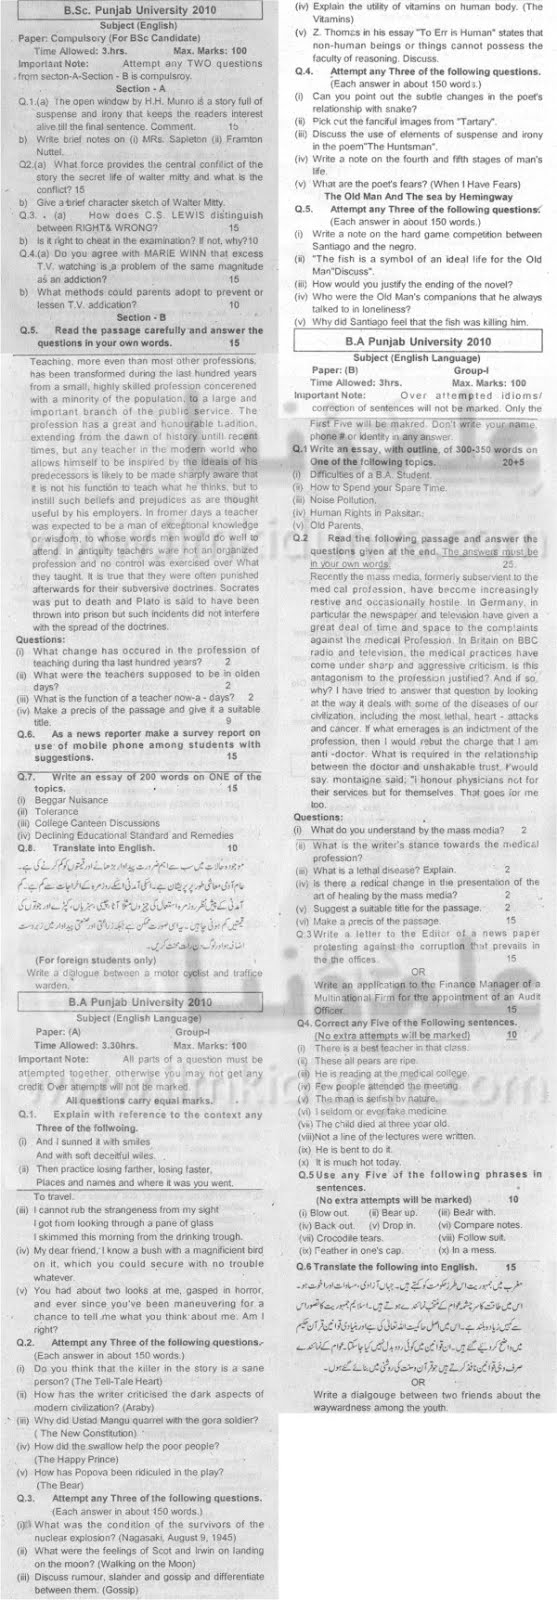 punjab university bsc english compulsory past papers 2010 pk punjab university bsc english compulsory past papers 2010